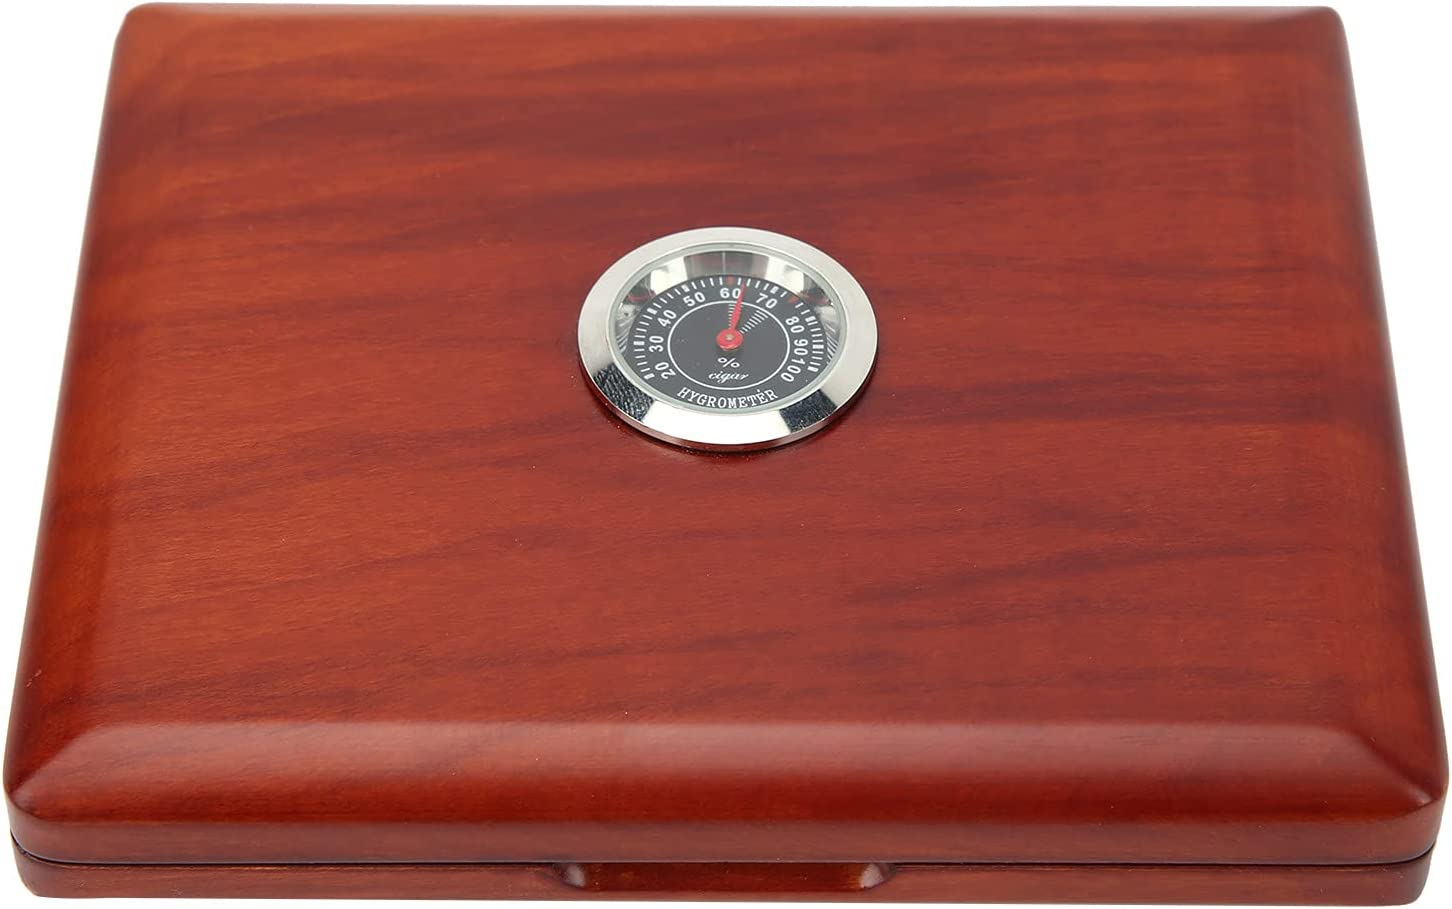 Reed Box 5 Grids Chicago Mall Wooden Clarinet Industry No. 1 Convenient with Hygrometer